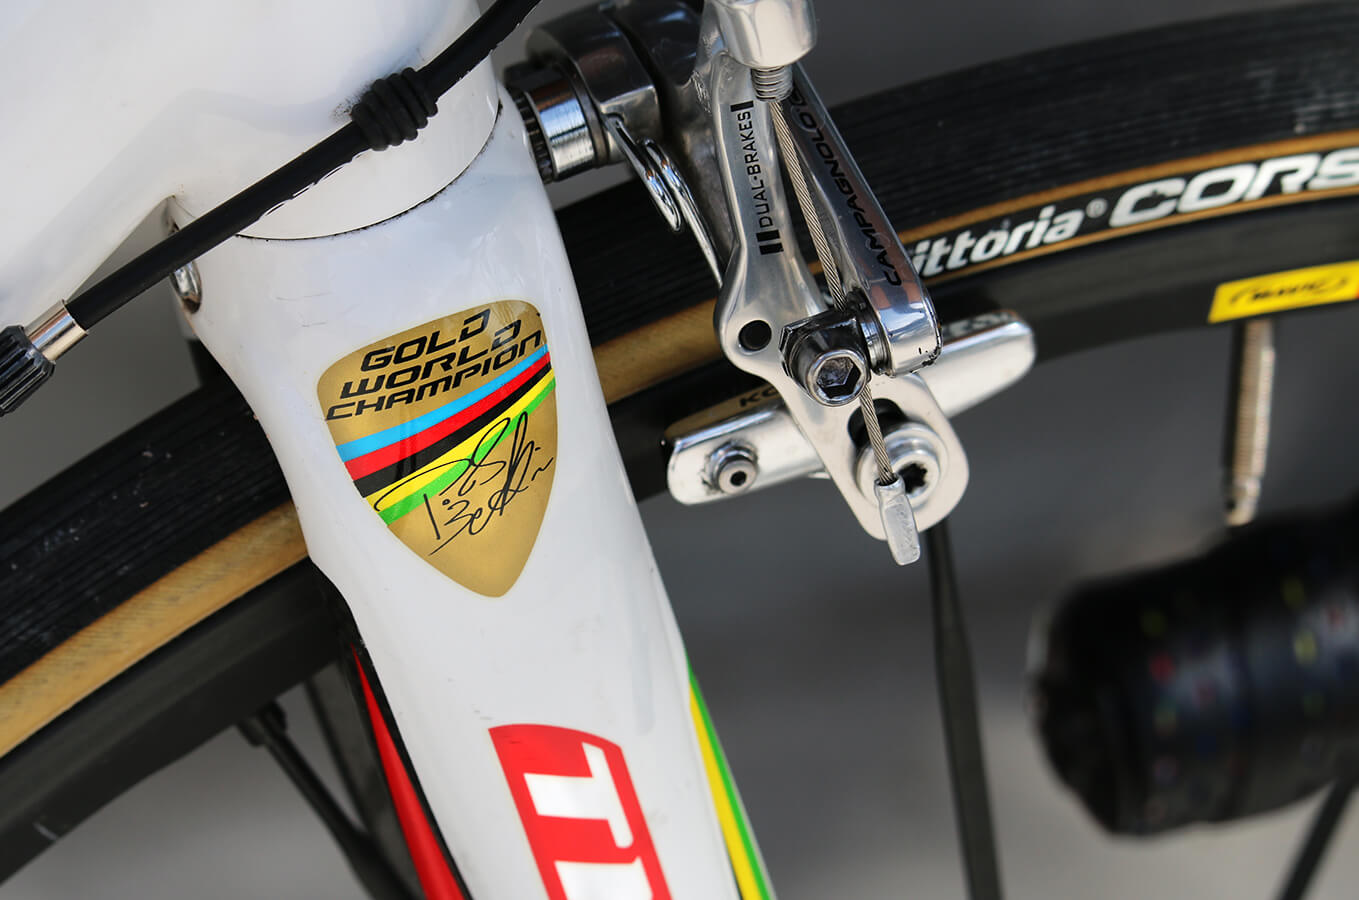 TIME VXRS Ulteam Bettini Limited Edition - Contender Bicycles